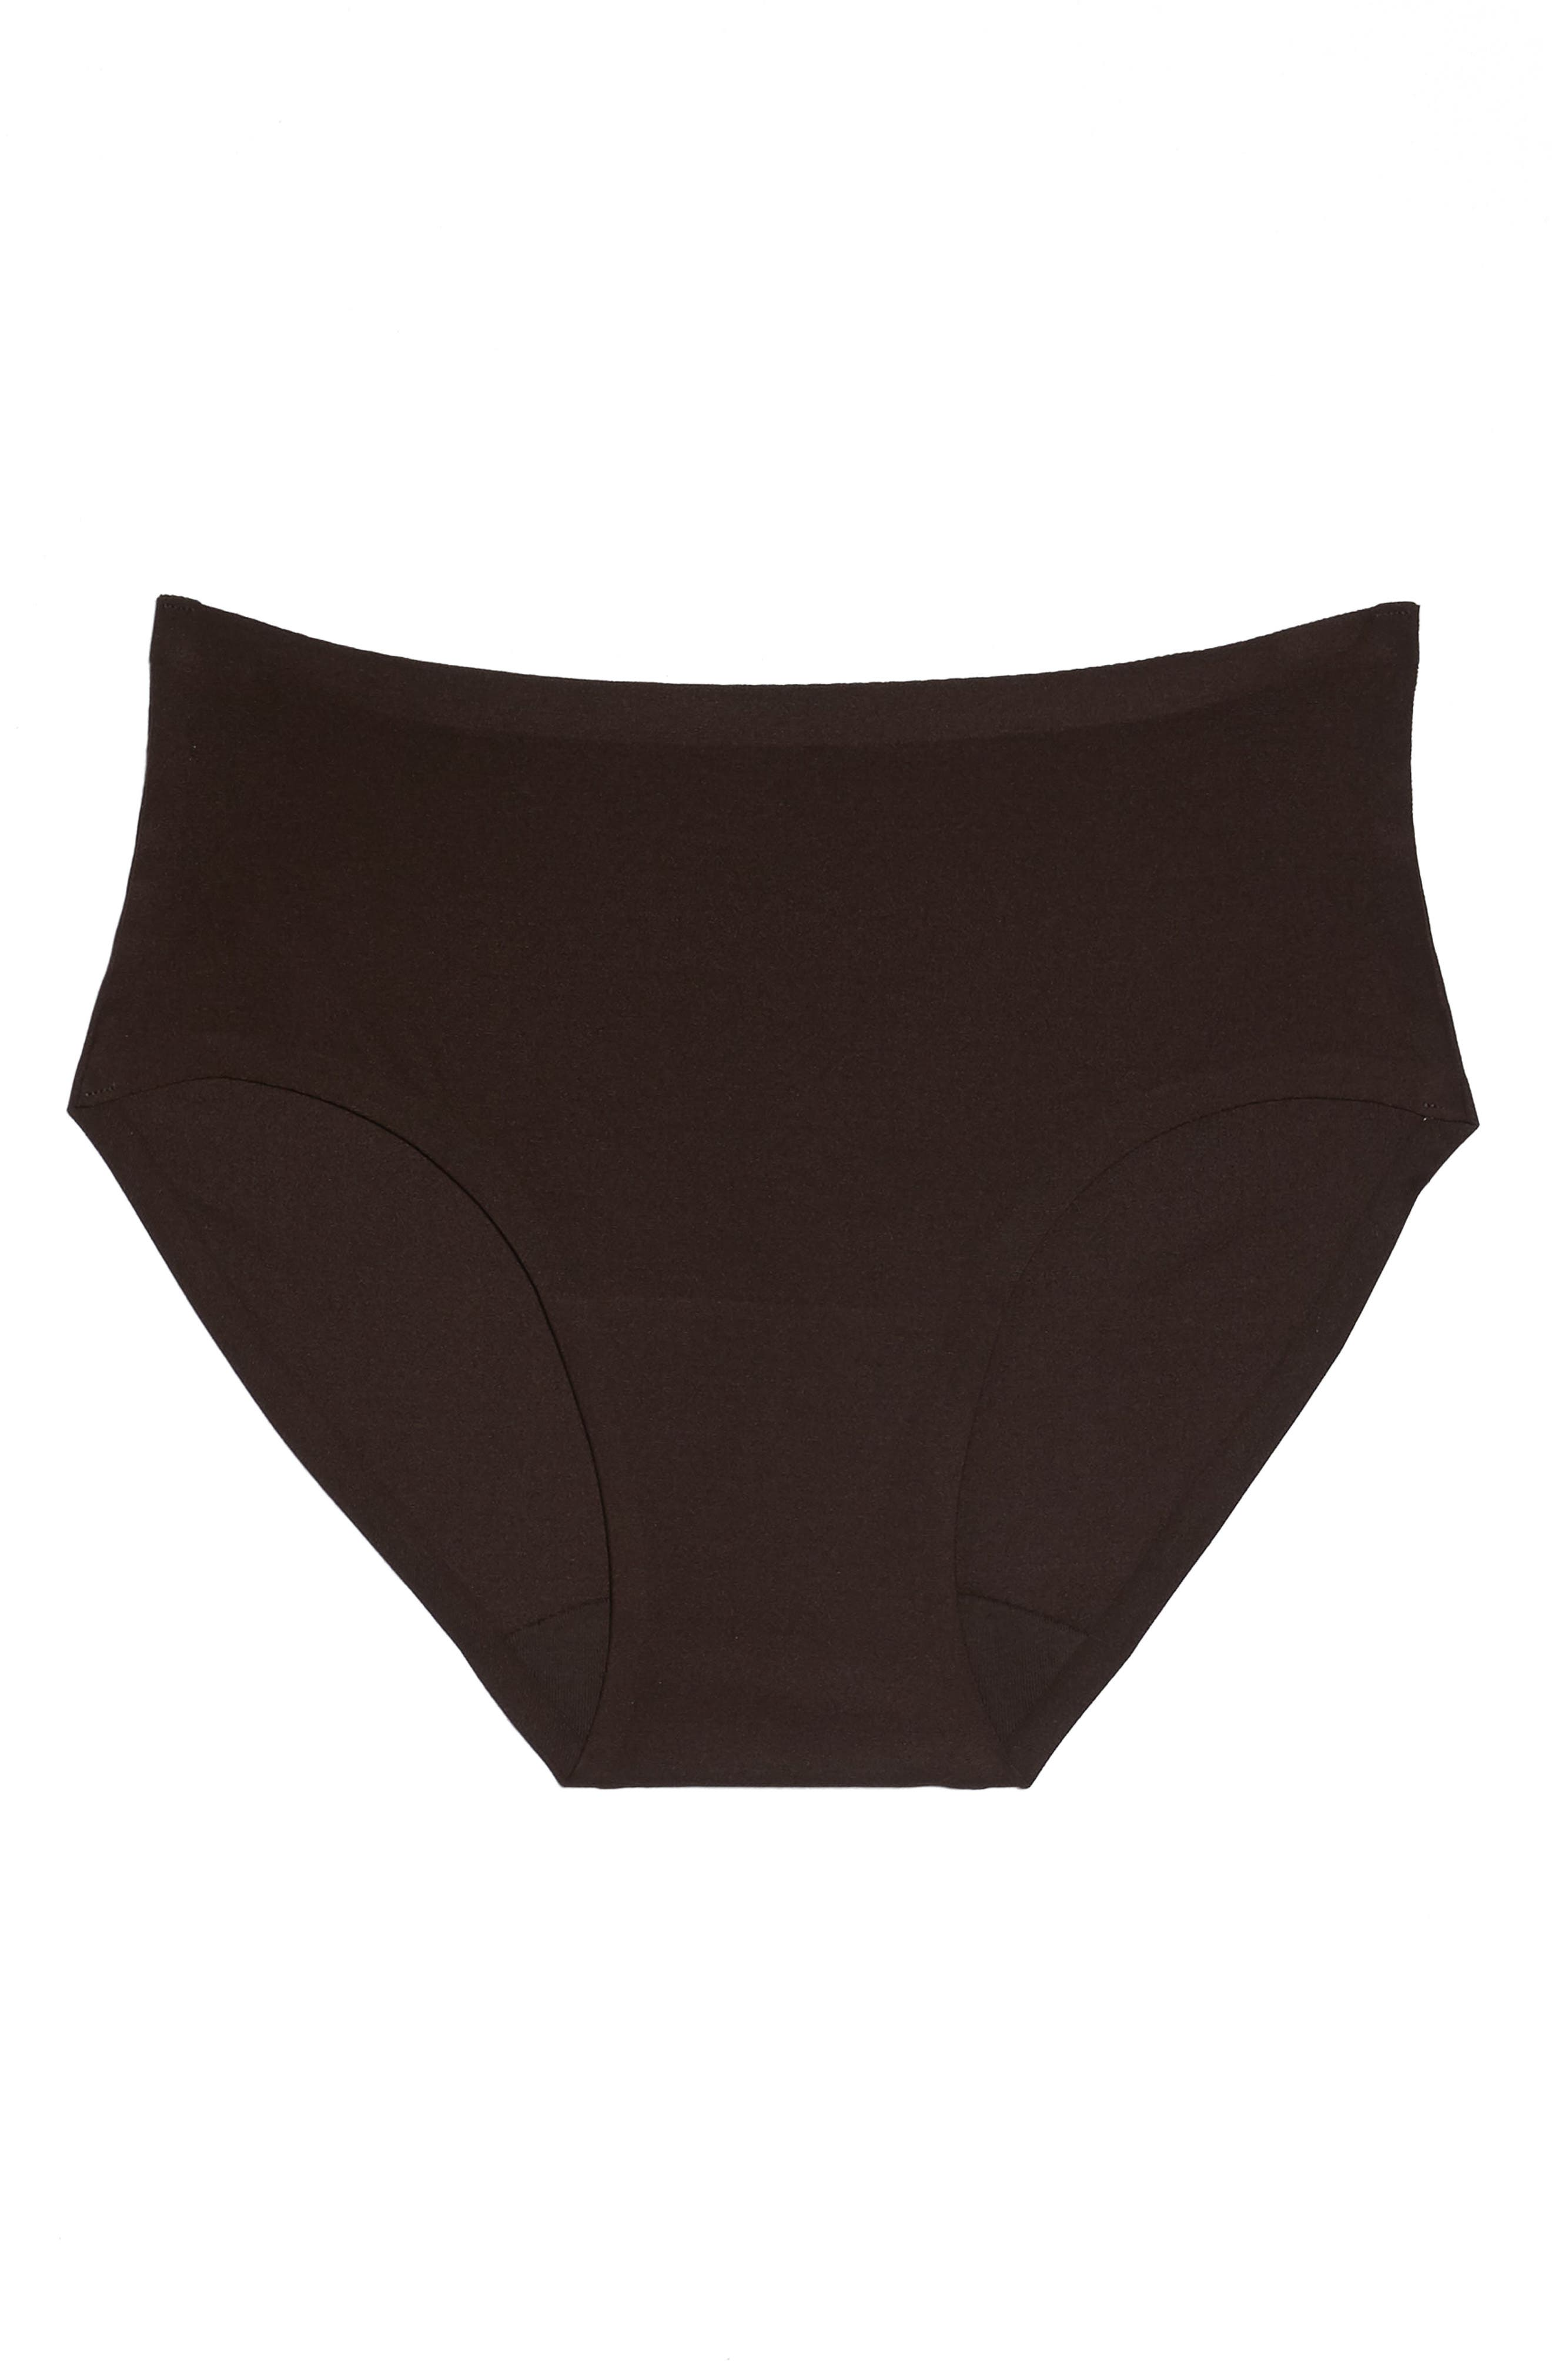 Soft Stretch Seamless Hipster Panties,                             Alternate thumbnail 6, color,                             BROWN